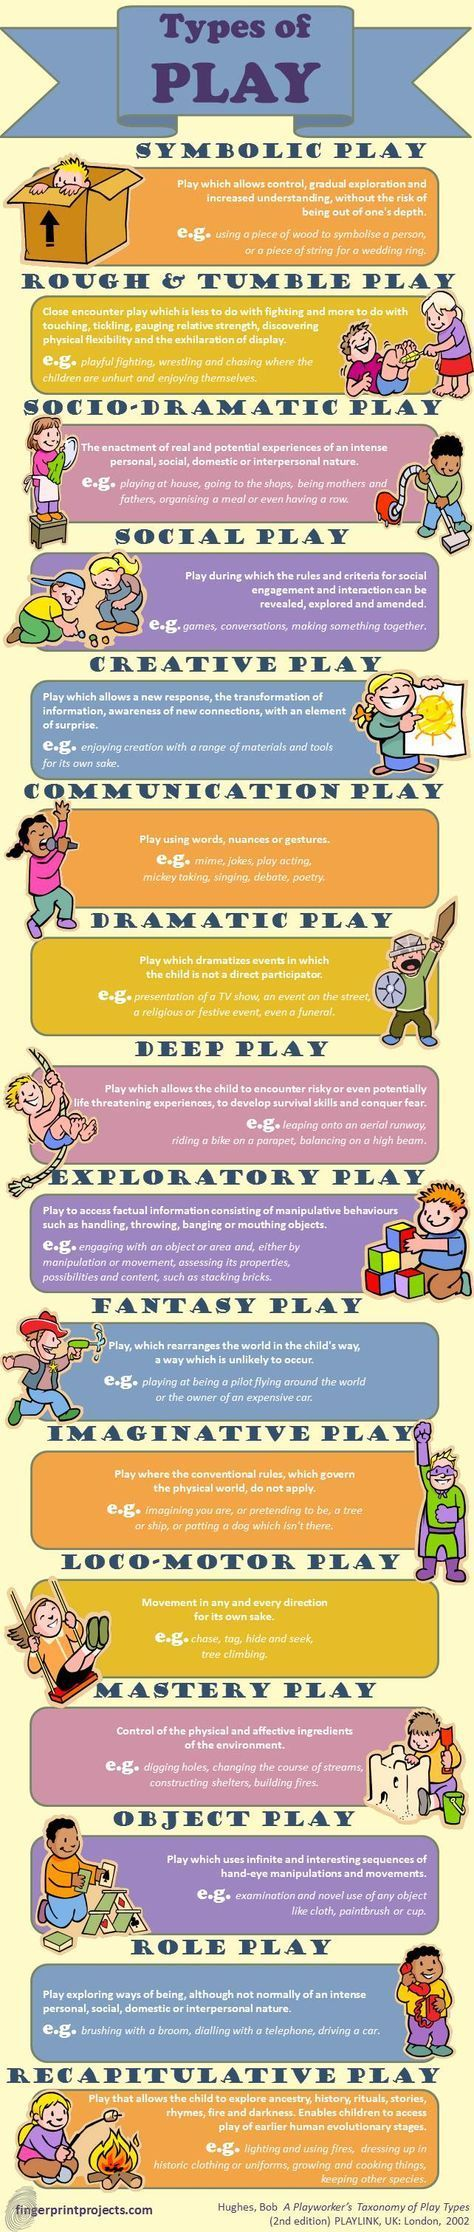 Found on http://fingerprintprojects.com Intended Audience: parents and teachers, Intended Developmental Group: Early Childhood, How it can help and why you picked it: I choose this as an informational poster for parents to understand the different types of play their children participate in, as well as a informational poster for possible preschool teachers to help promote different types of play for children. | https://lomejordelaweb.es/